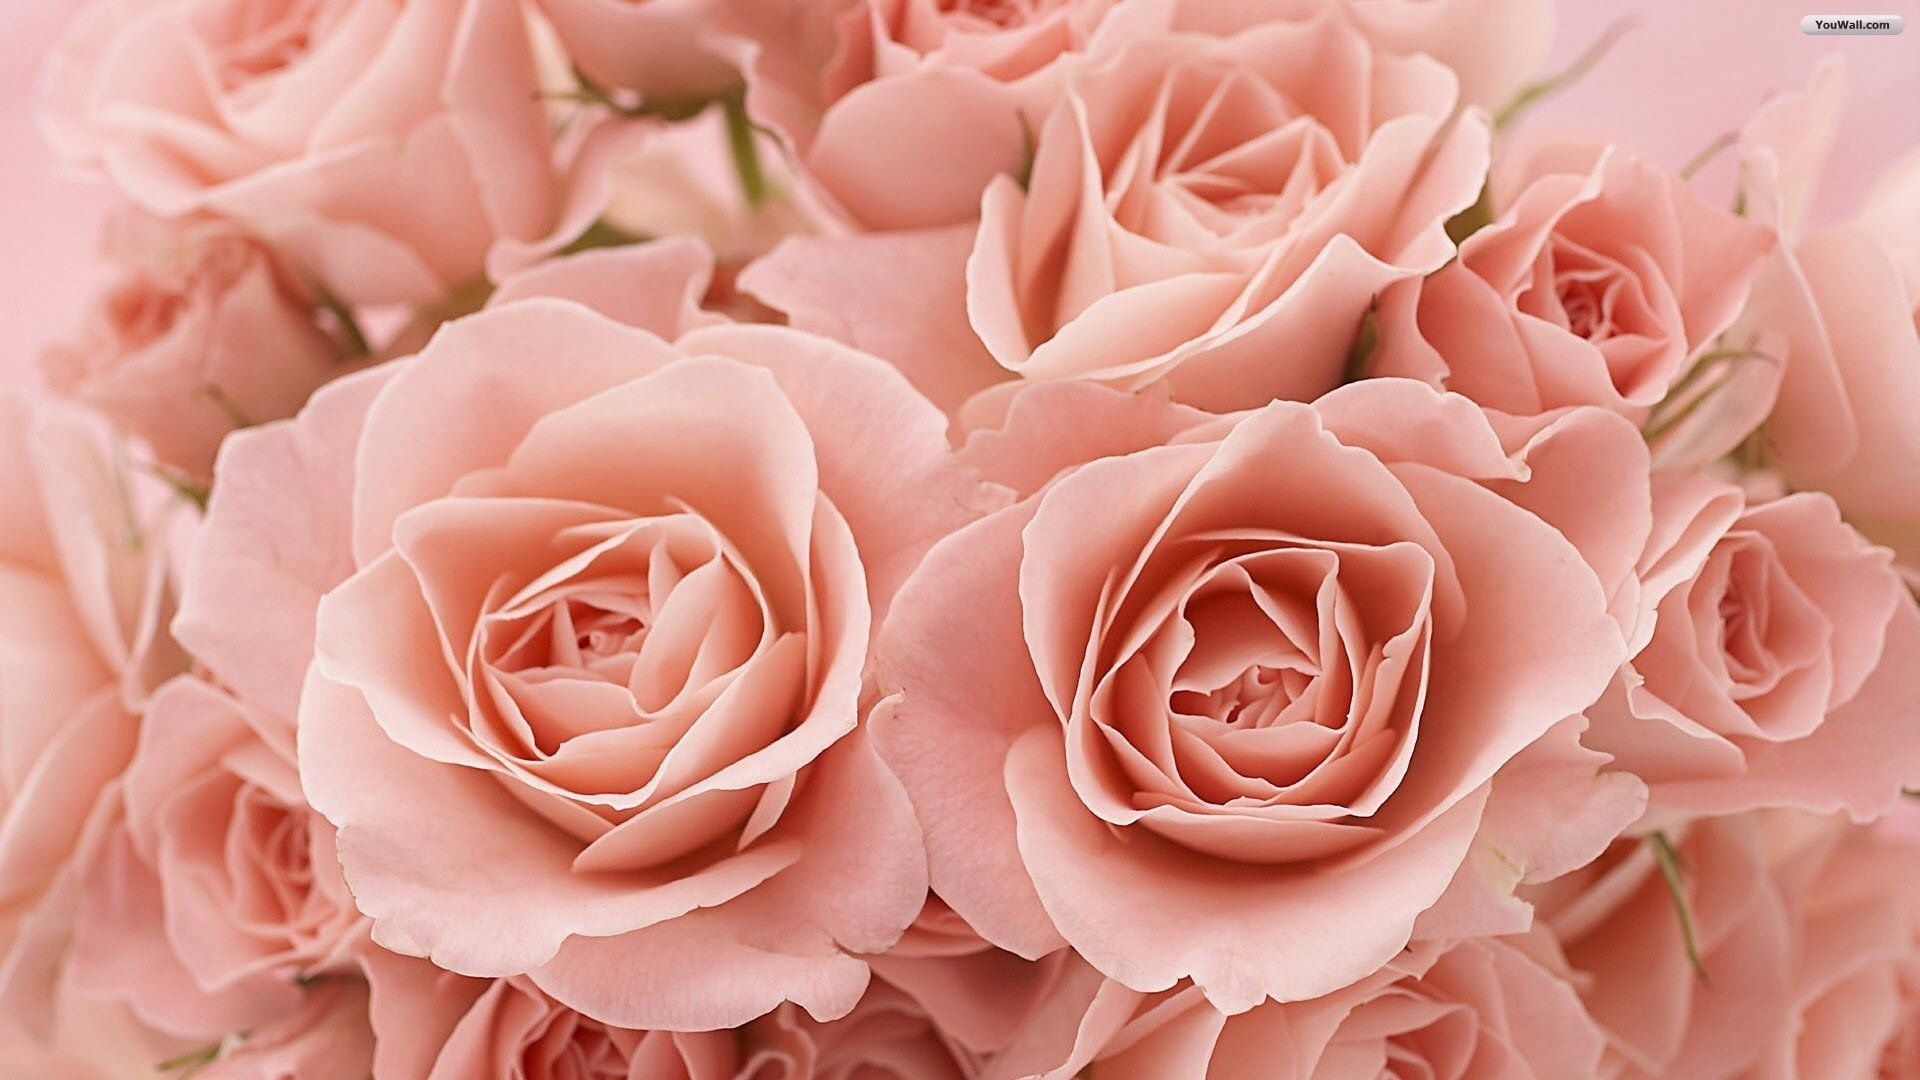 light pink roses background tumblr light pink roses tumblr